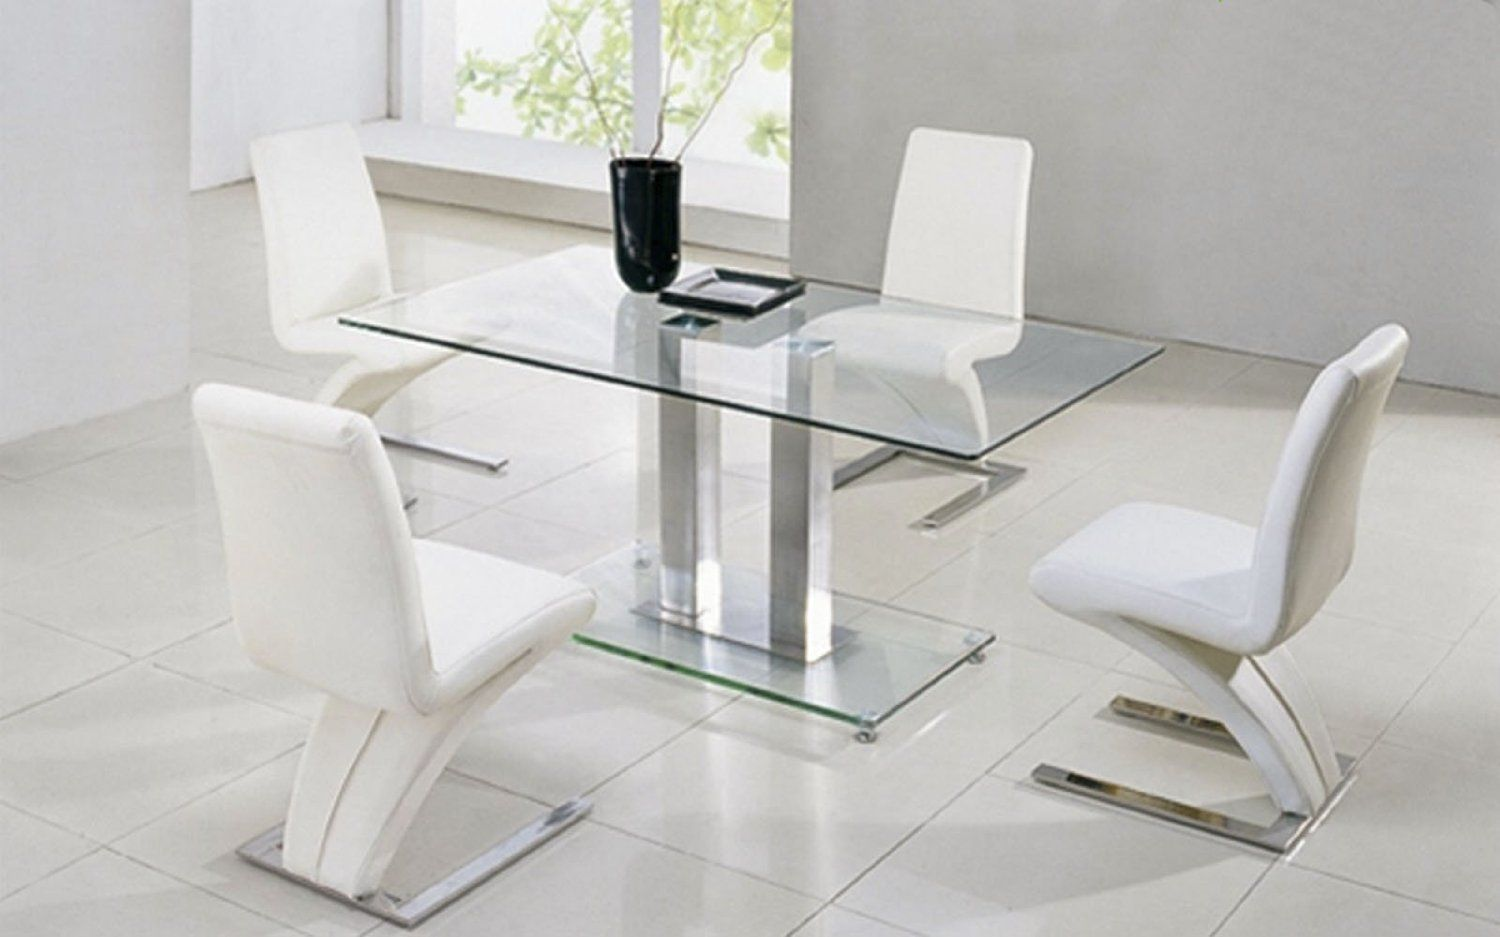 Actona Glass Dining Table With 4 Designer 'Z' Chairs In